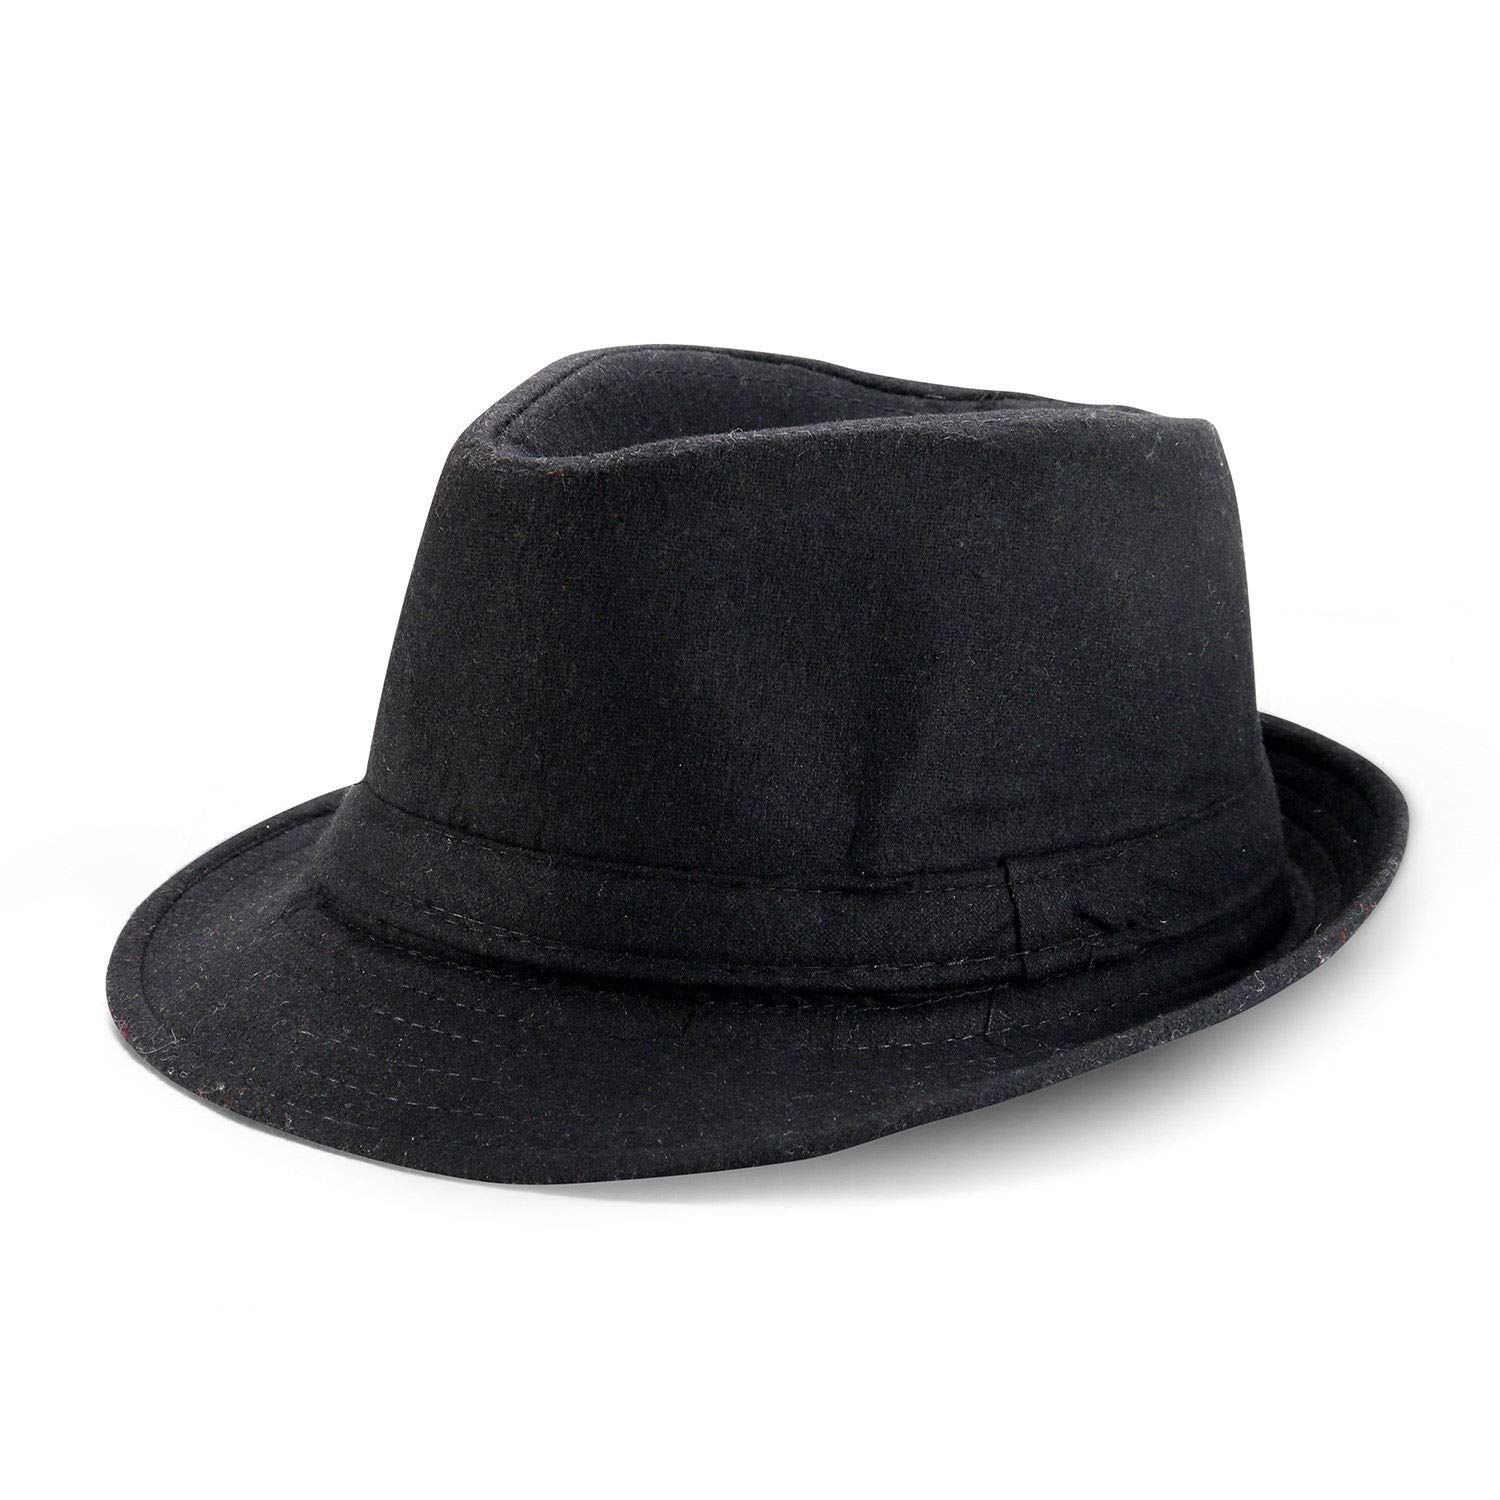 Ezpand Mens Short Brim Structured Straw Fedora Costume Trilby Hiking Camping Hat